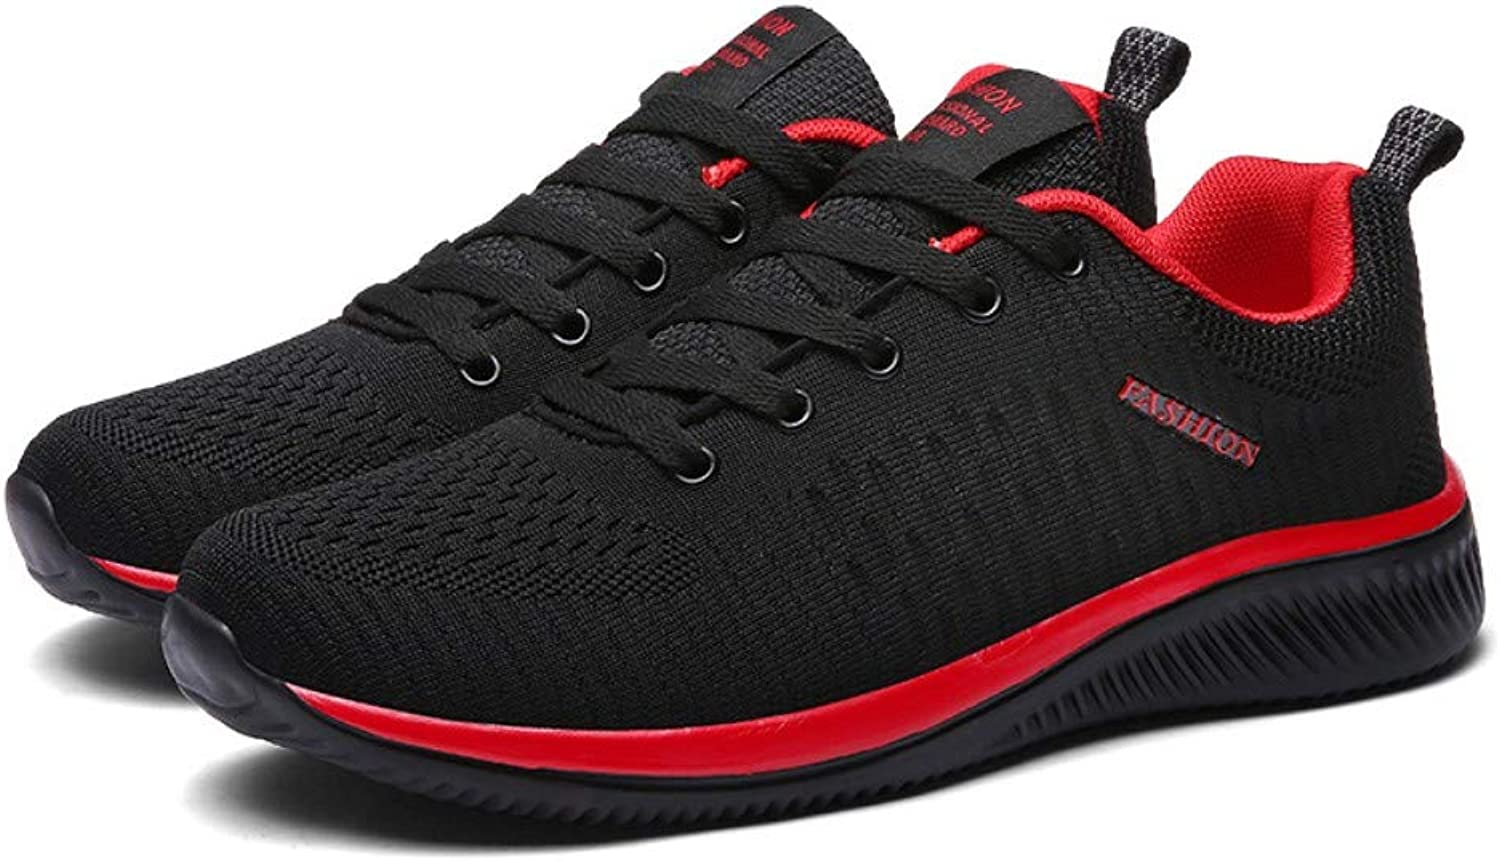 YAYADI Sports shoes Boys Plus Lightweight Breathable Running shoes For Men Fly Weaving Sports Sneakers Walking shoes